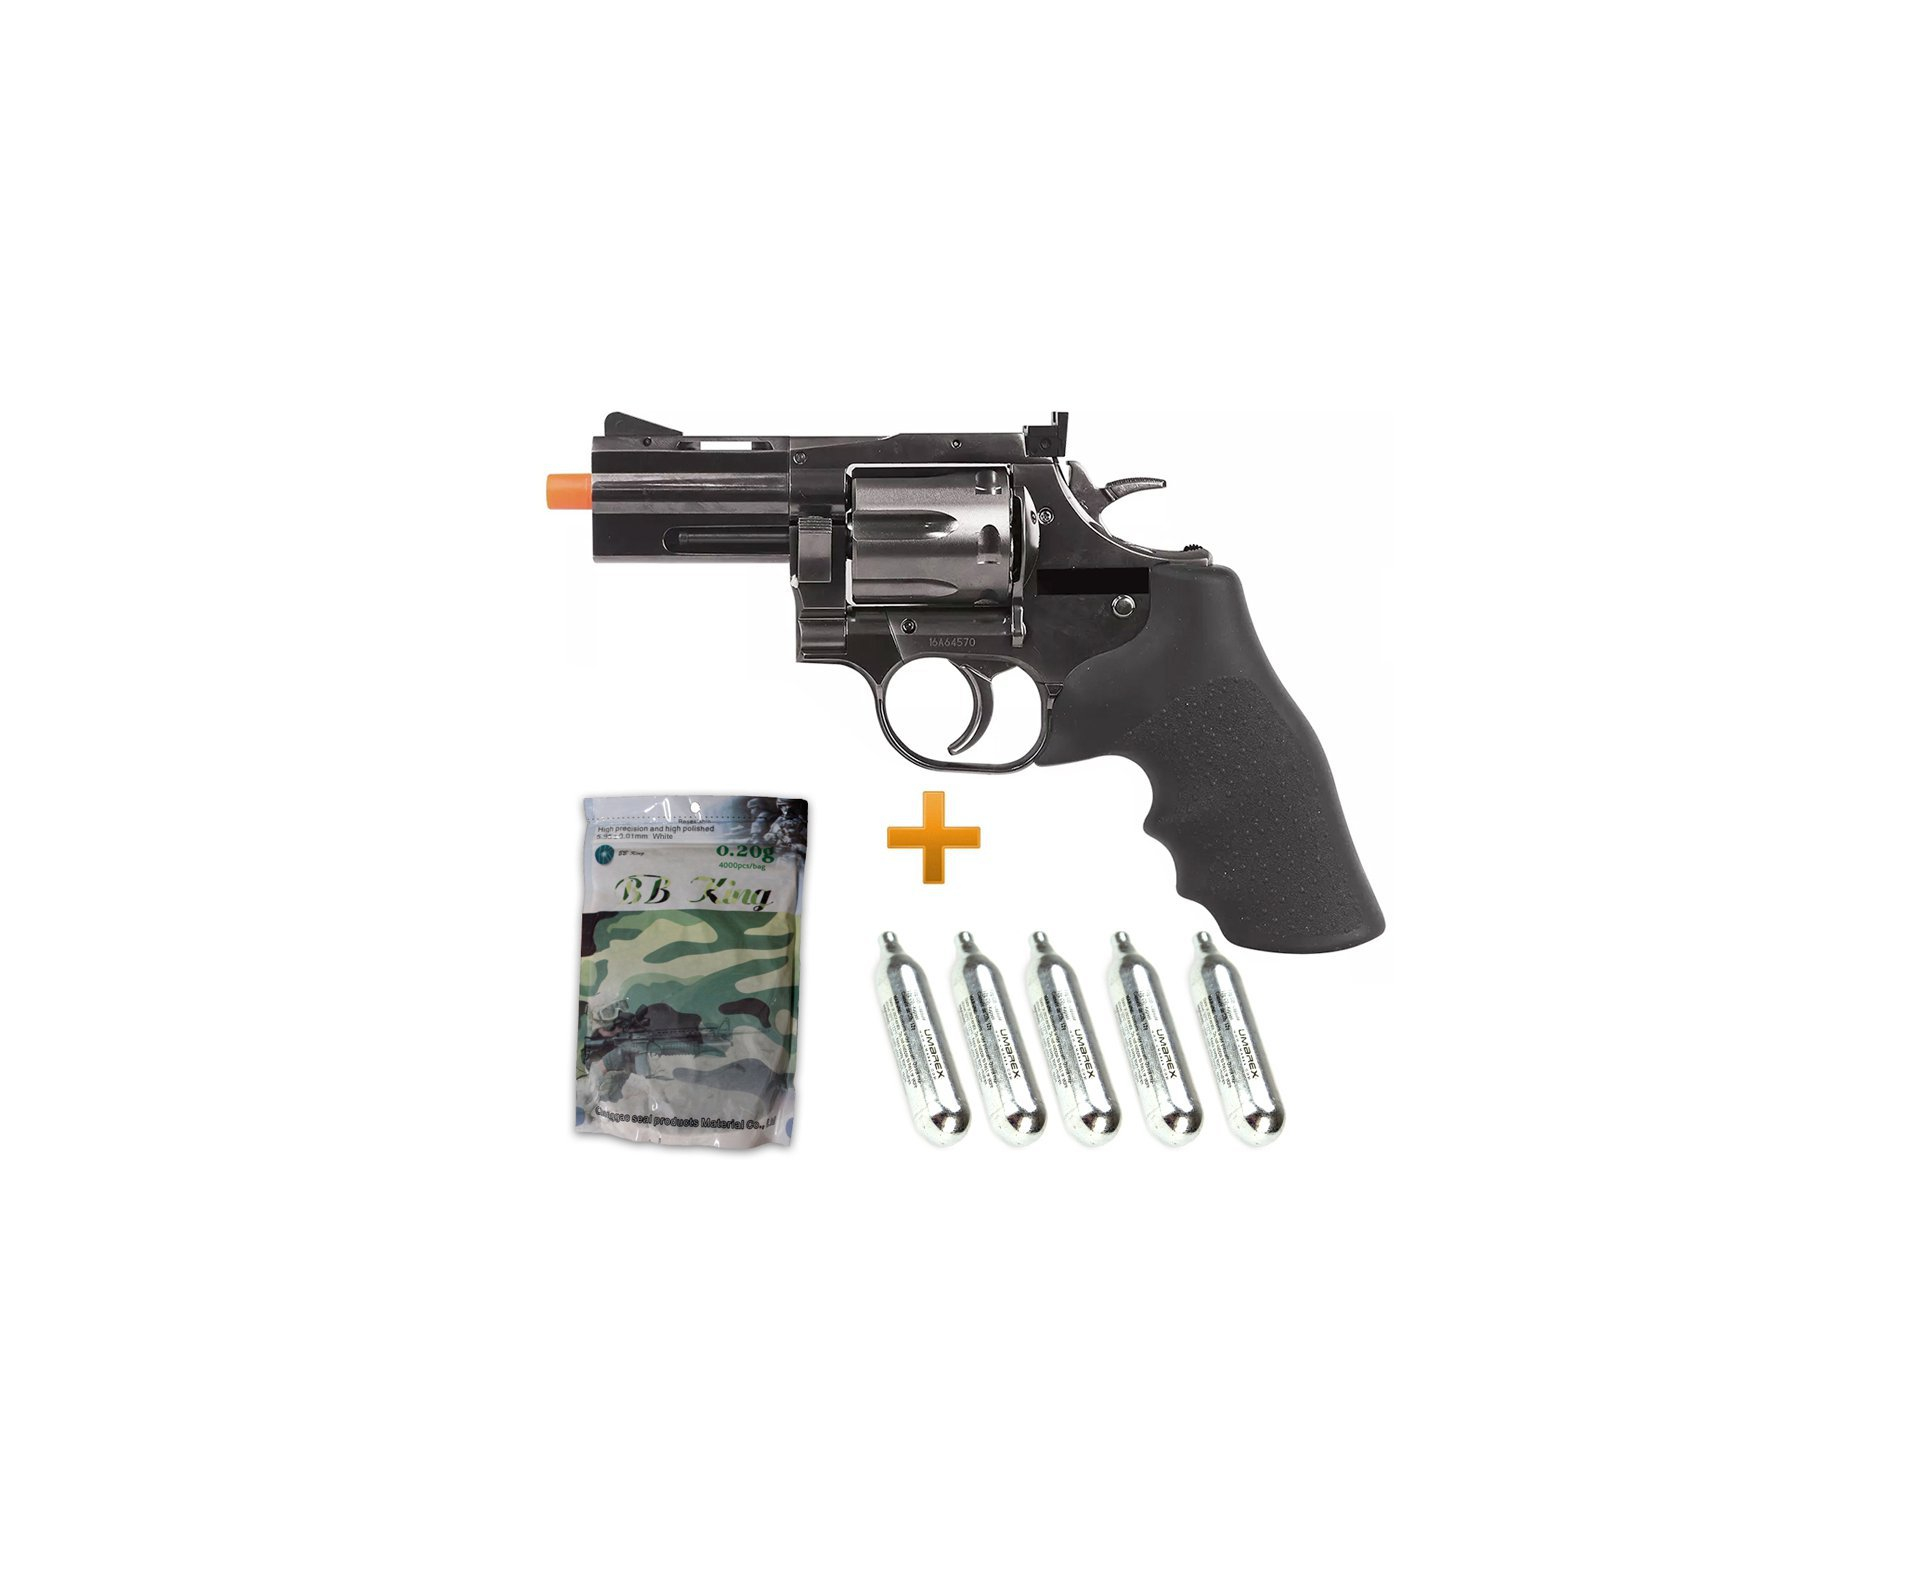 "Revólver De Airsoft Full Metal Co2 Dan Weson 715 2,5"" 6,0mm Asg + 05 Co2 + Bbs 0,20g"